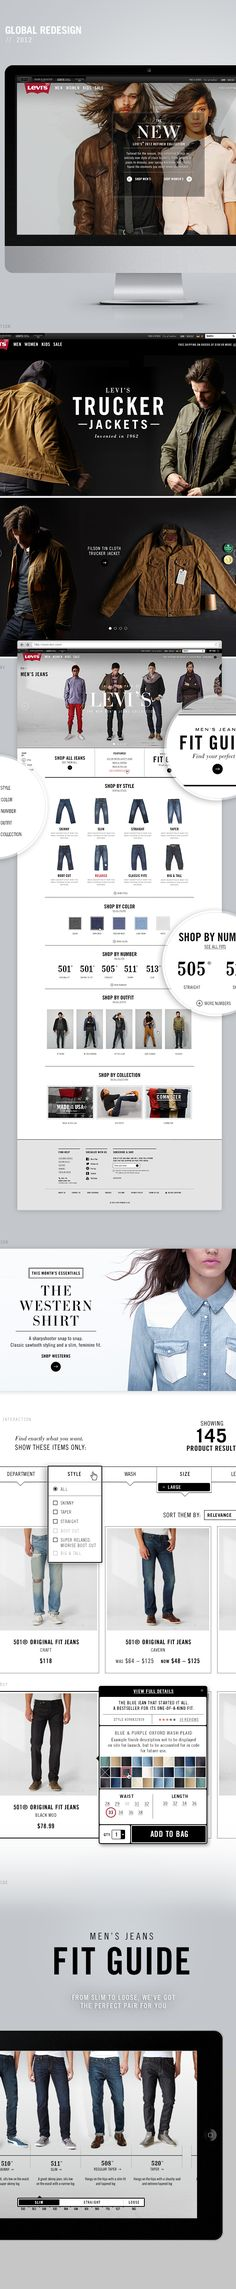 Levis.com Redesign by Annmarie Akong, via Behance